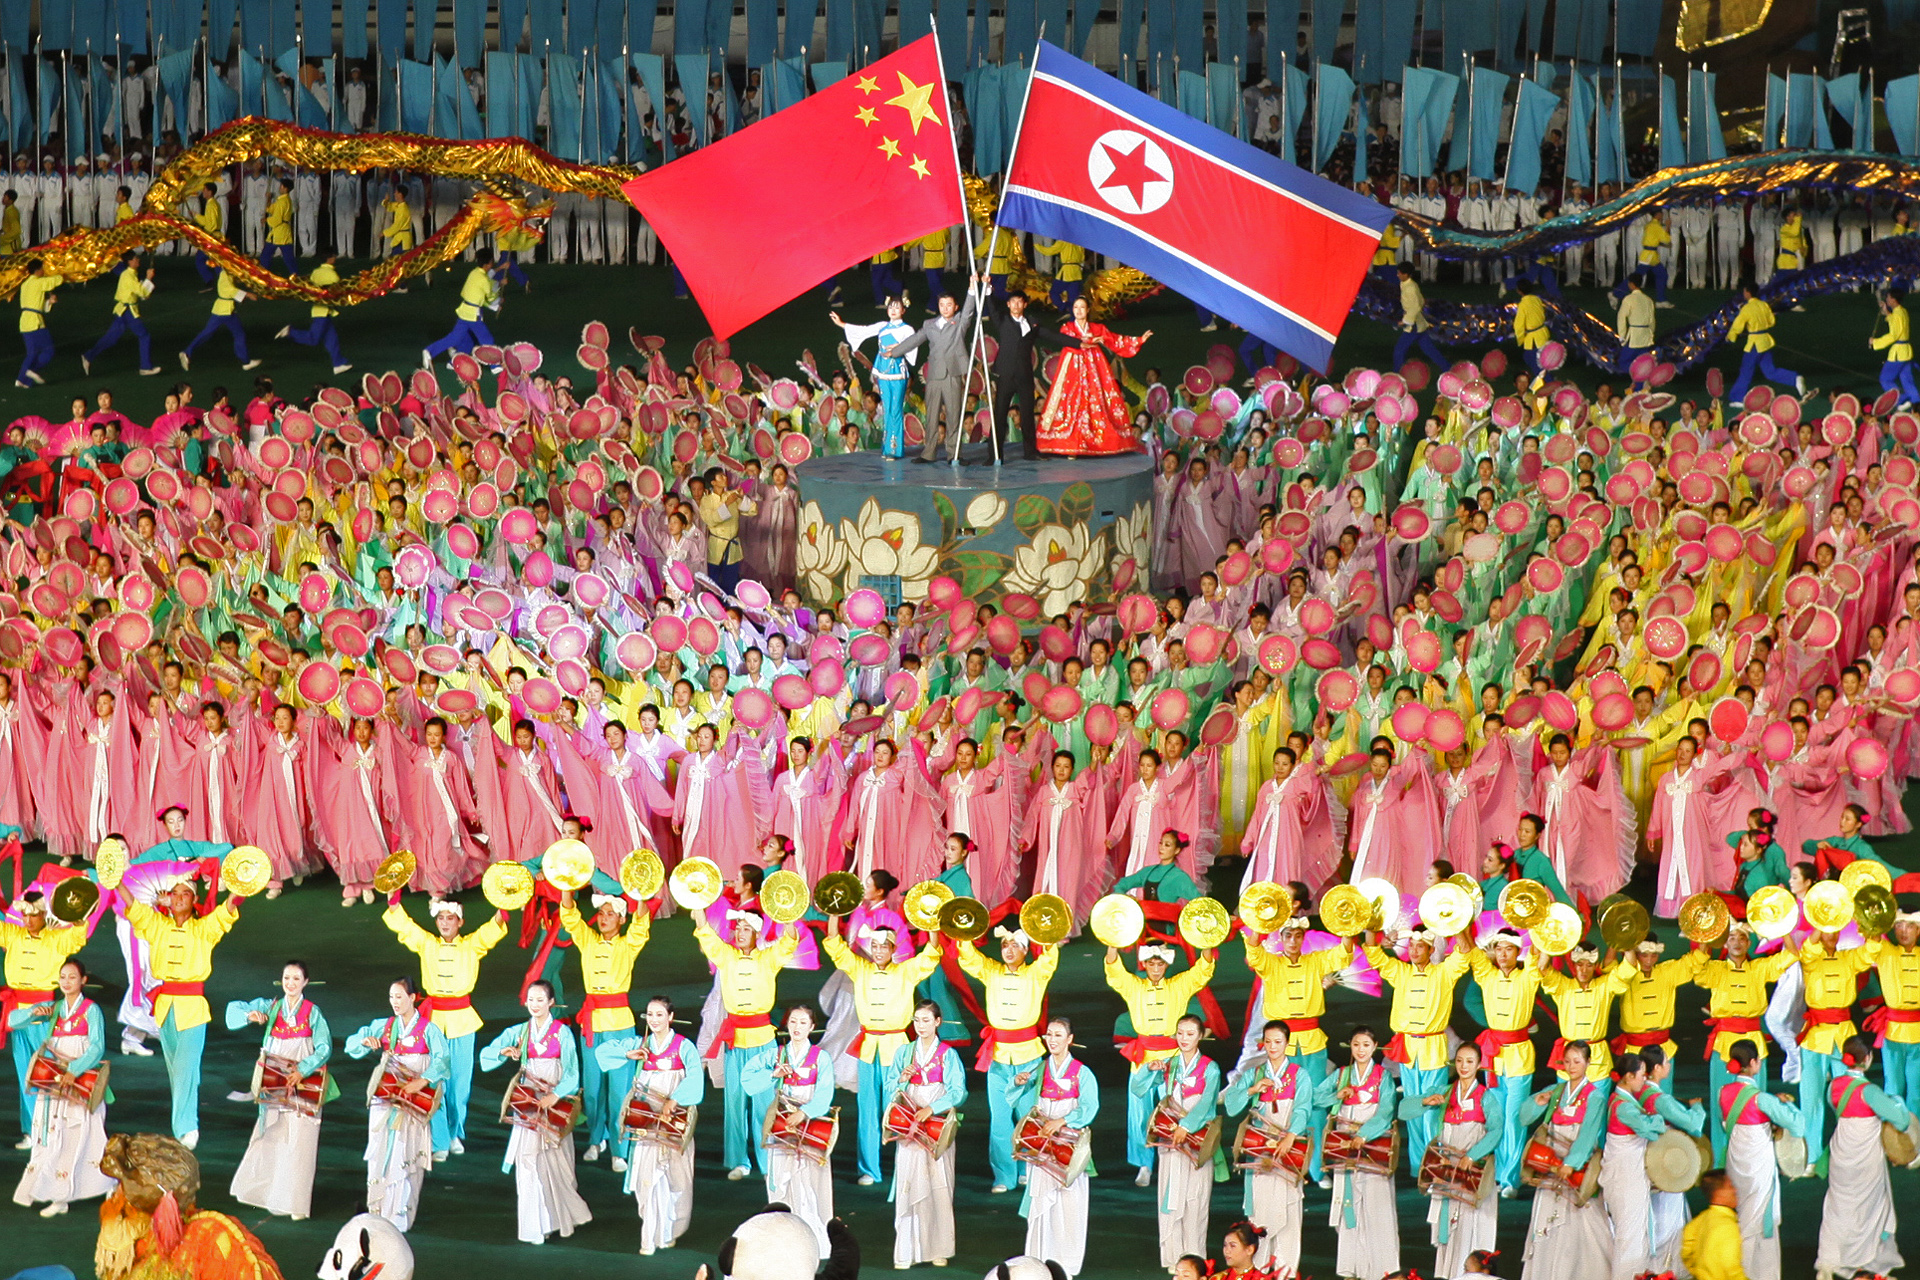 Frenemies: Strained Relations Between North Korea and China